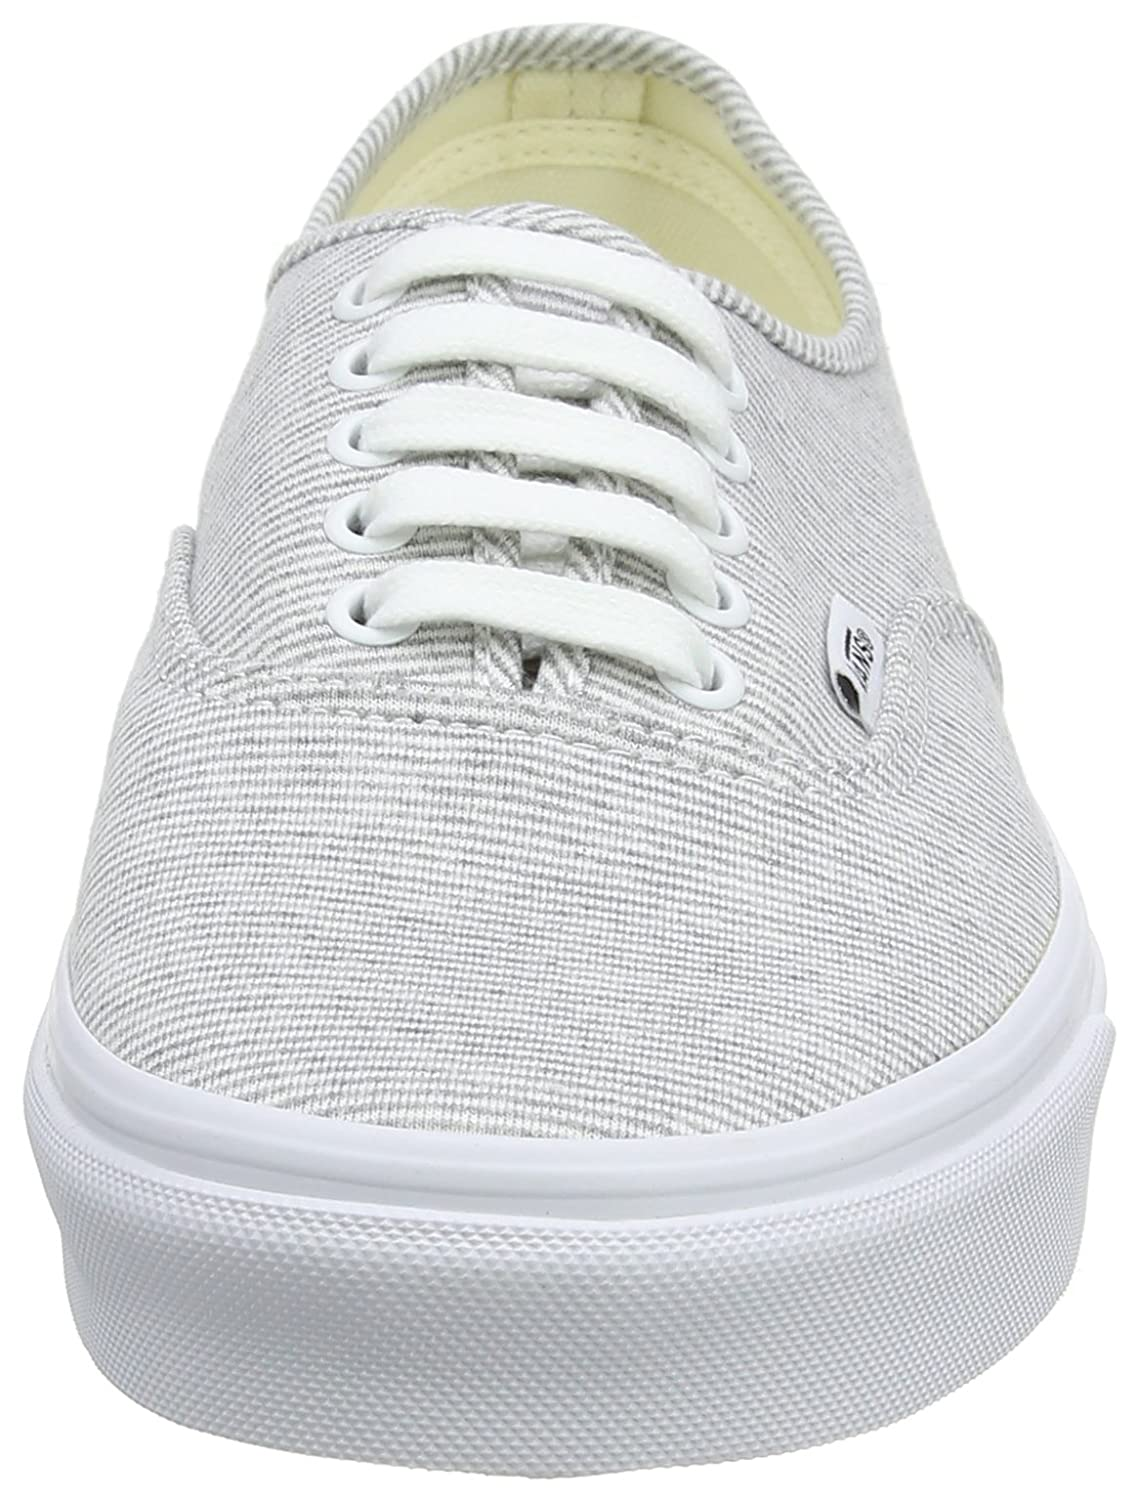 Vans Unisex Authentic Canvas US Shoes B076CV8QYQ 8 M US Canvas Women / 6.5 M US Men|Gray/True White 299f8b